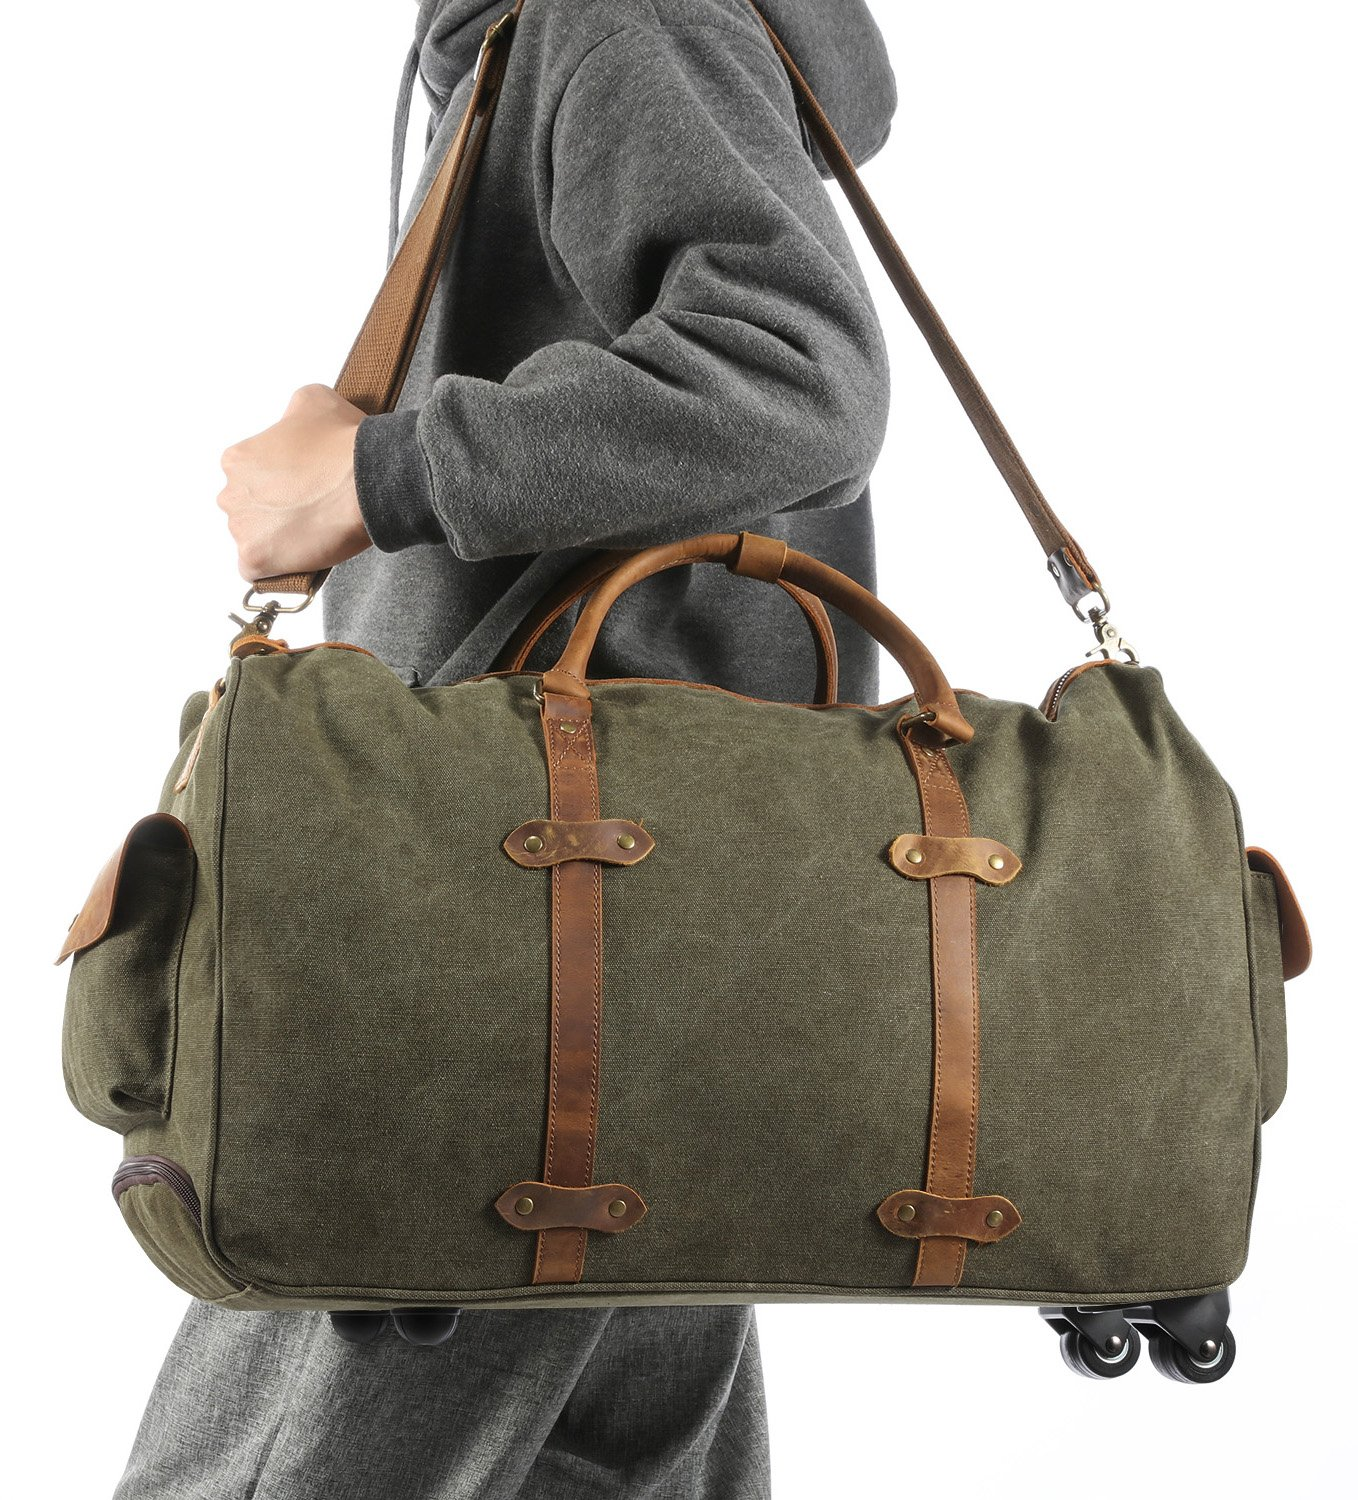 Kattee Rolling Duffle Bag with Wheels Canvas Travel Luggage Duffel Bag 50L (Army Green) by Kattee (Image #7)